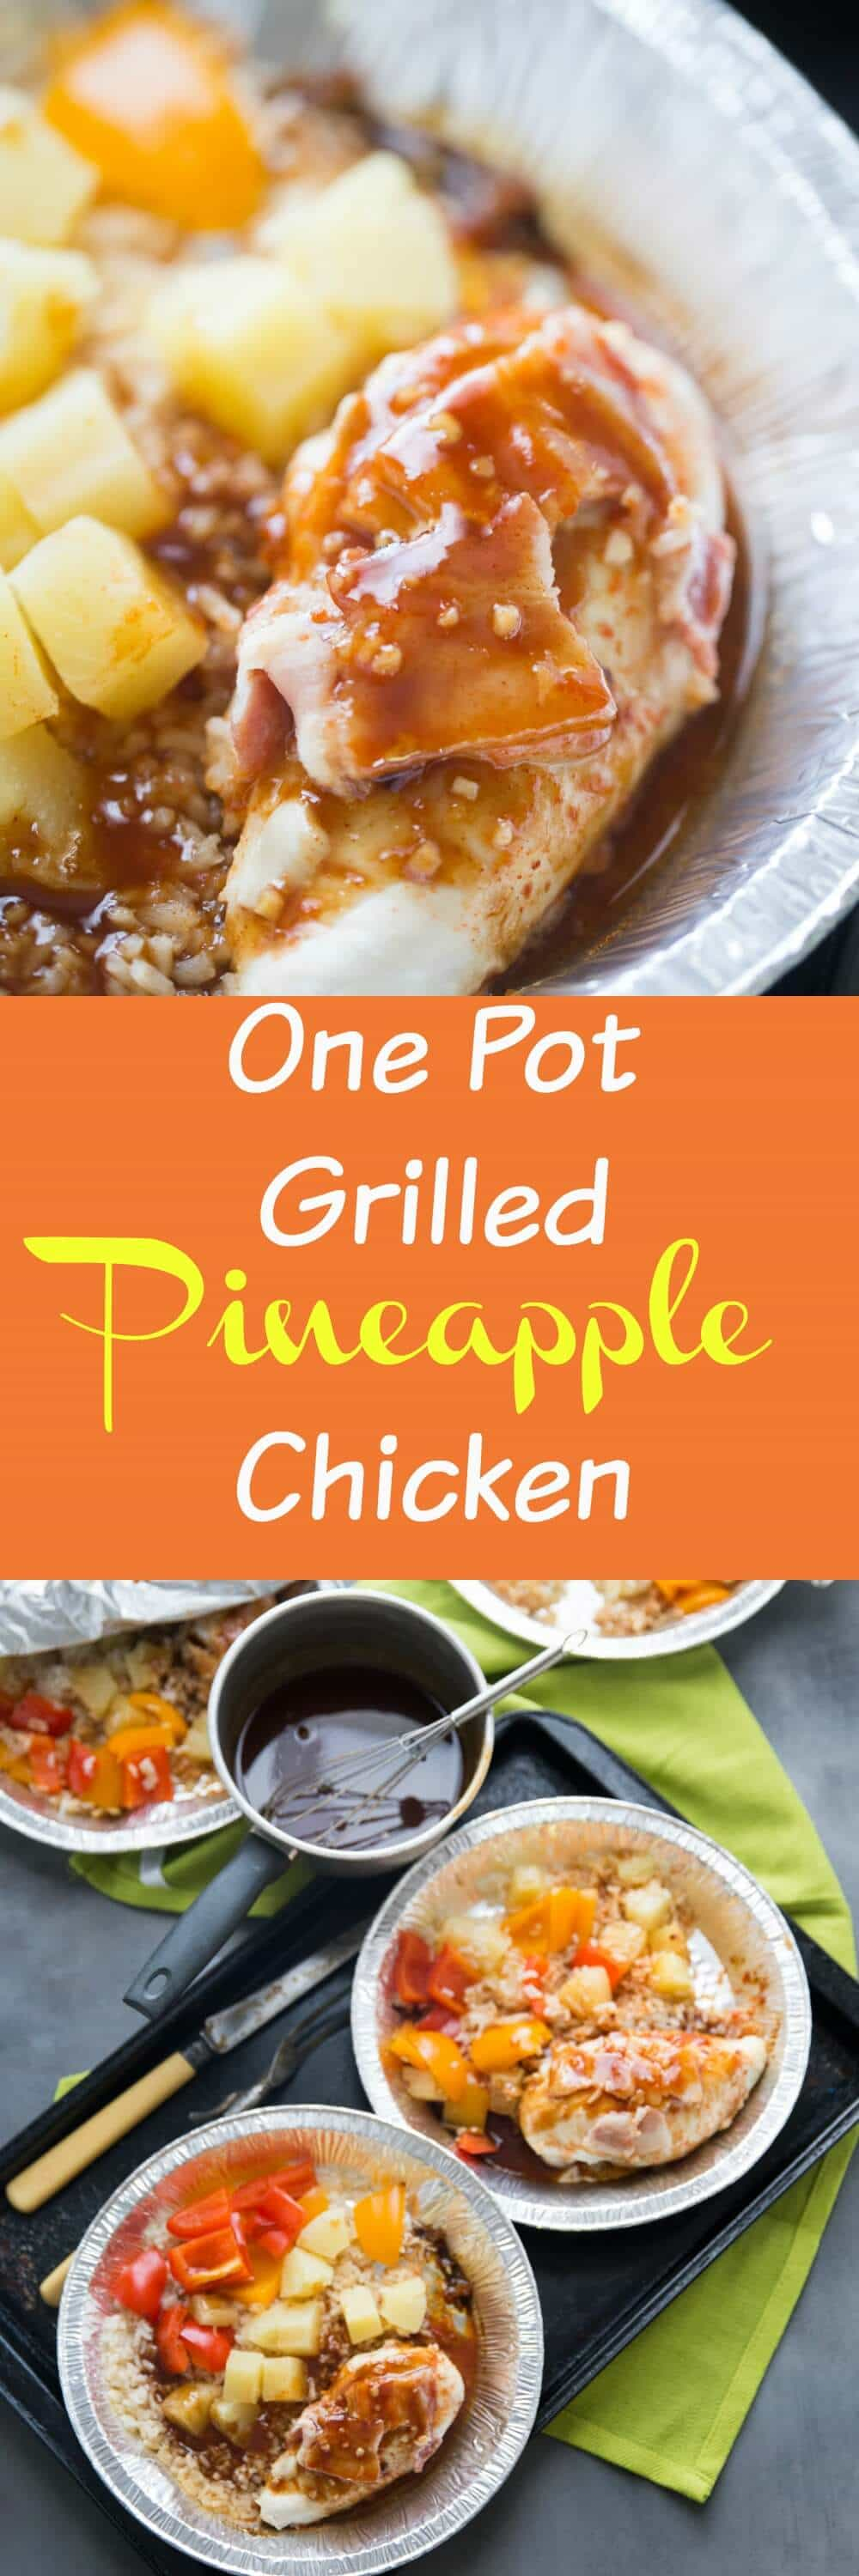 This pineapple chicken is tossed with rice, peppers and bacon and cooked right on the grill. Dinner can really be this easy and this GOOD!